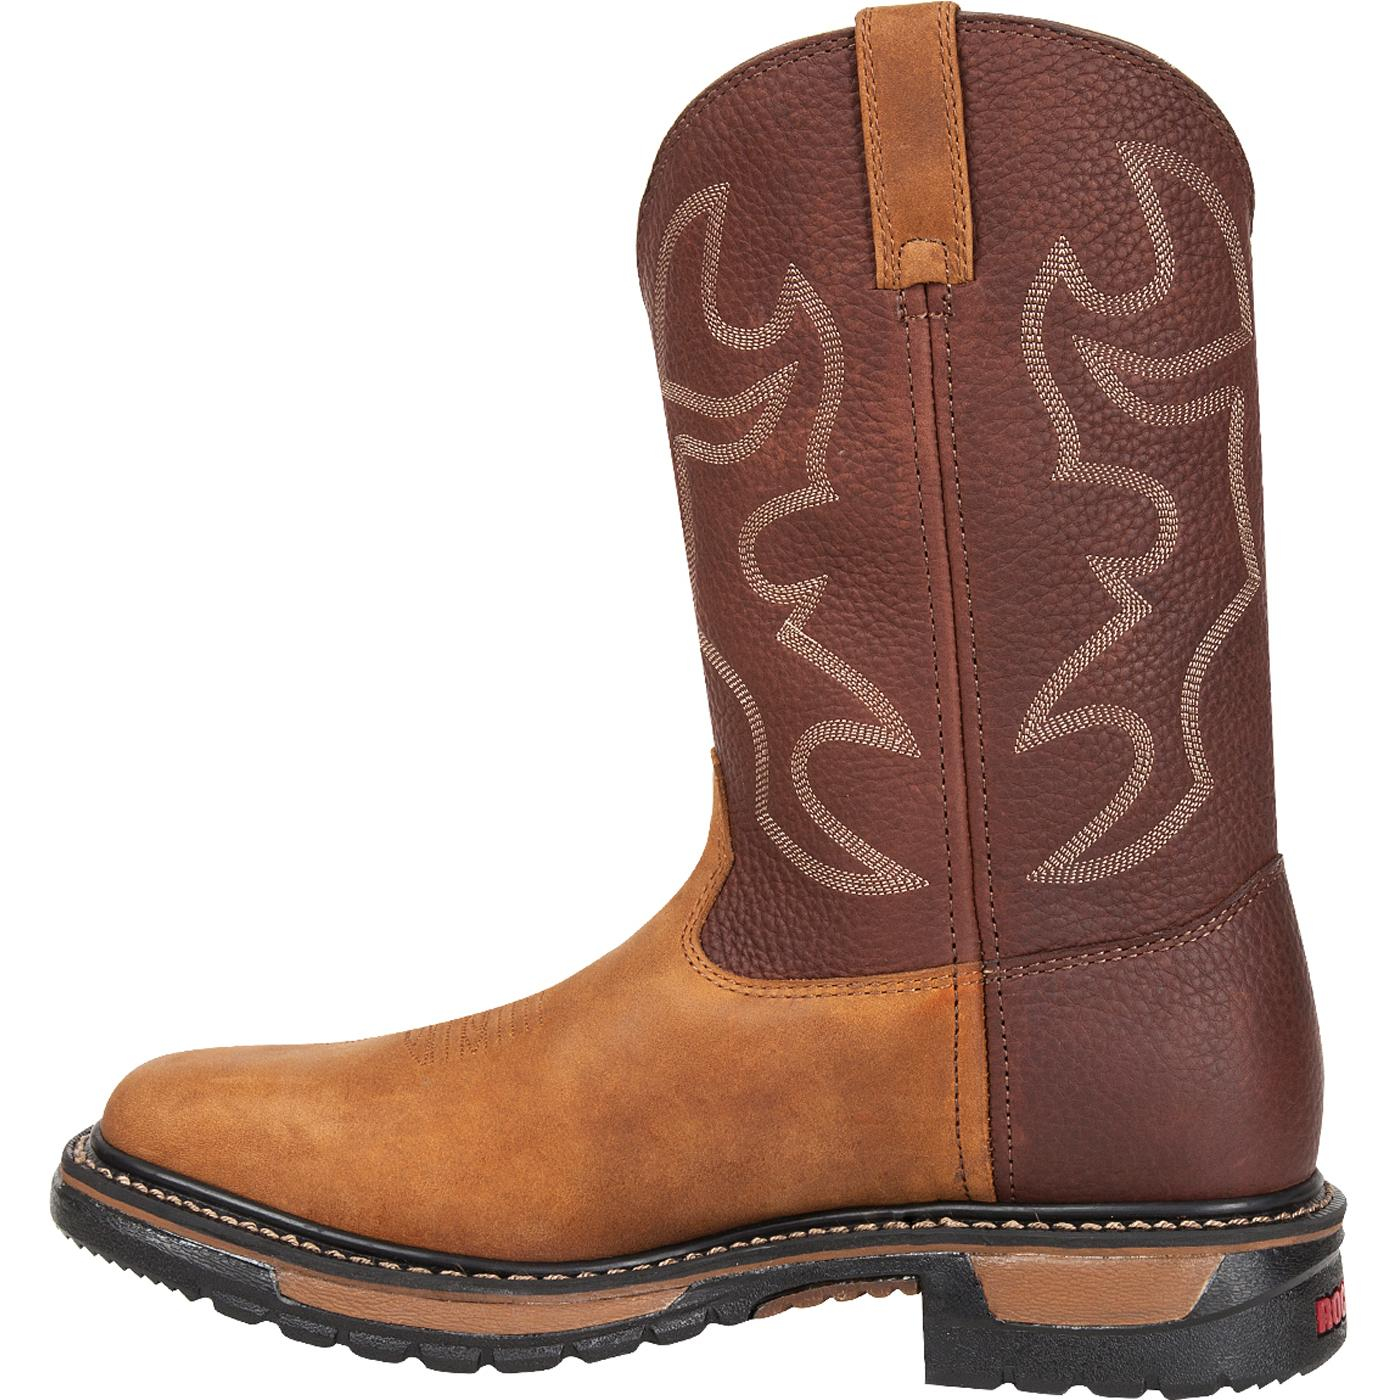 Western Original Ride 10 Inch Steel Toe Square Toe Cowboy Boot RKYW040